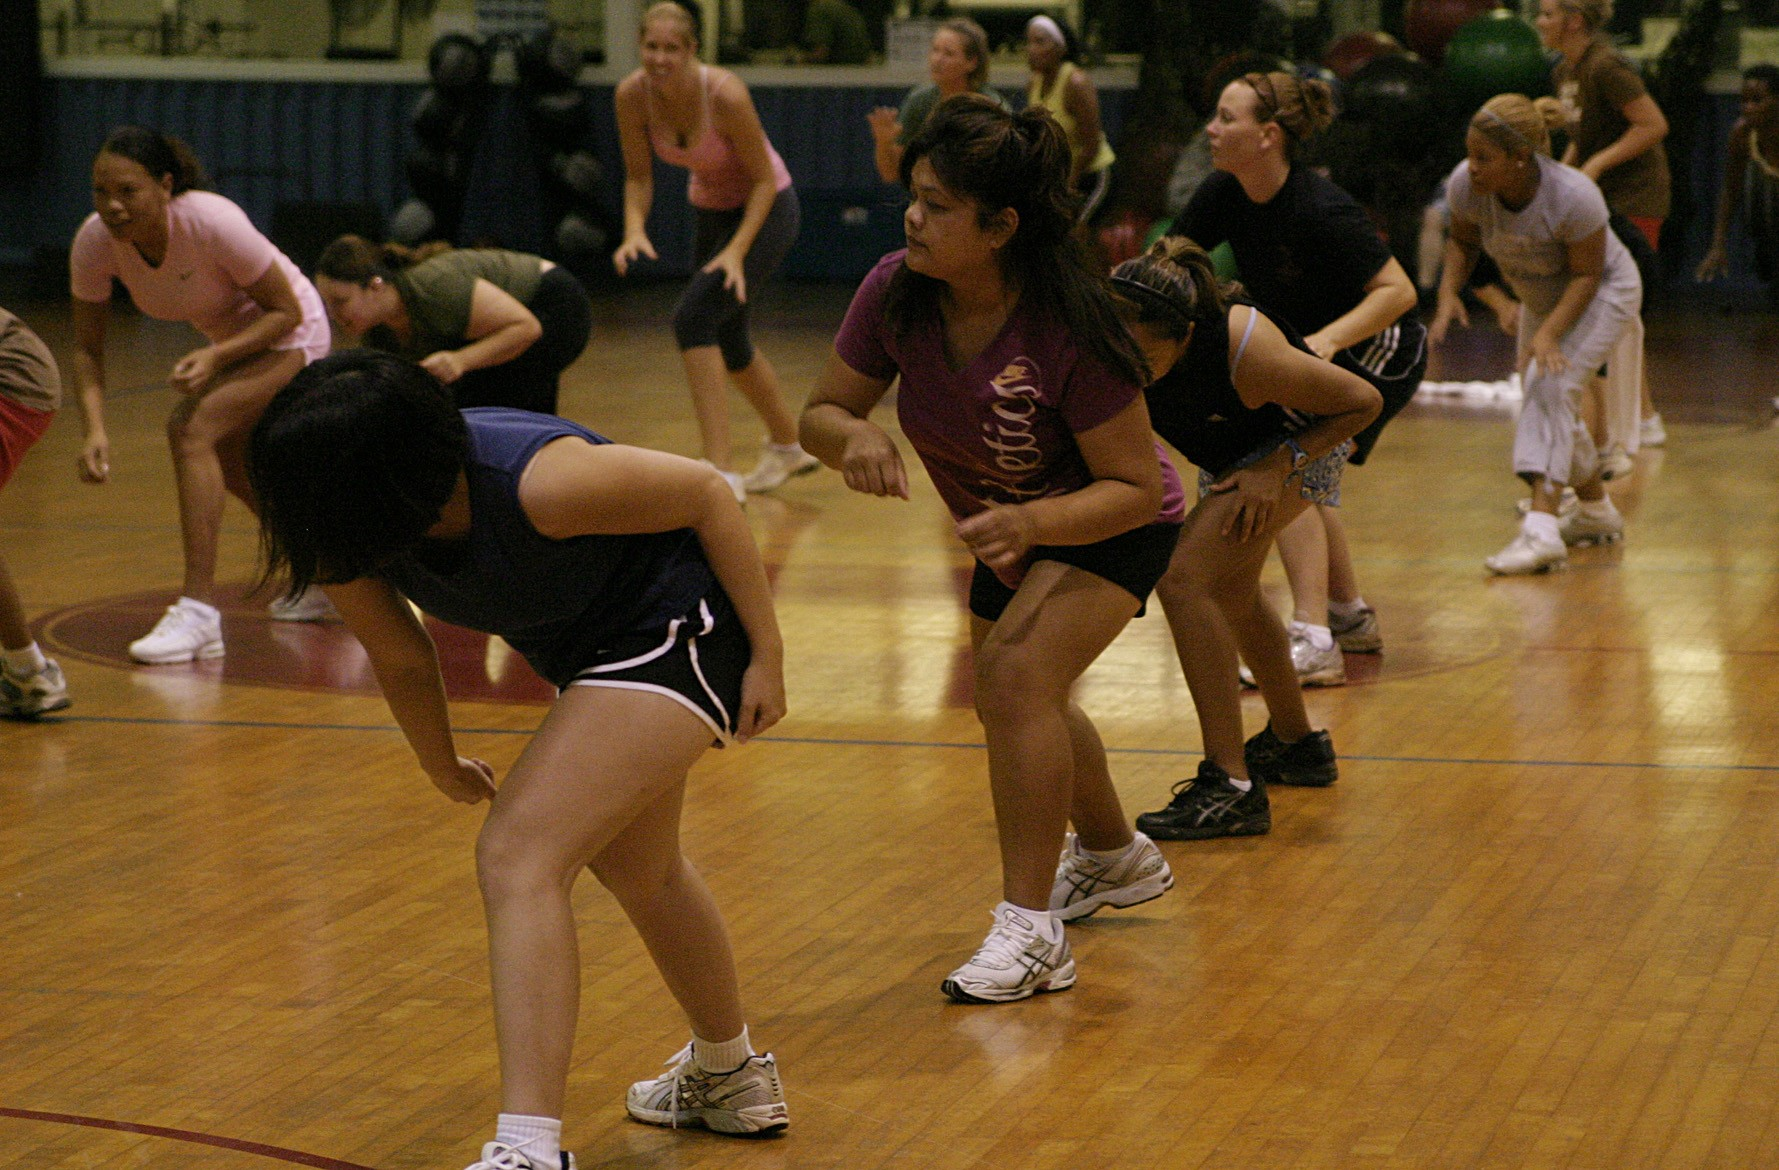 schofield barracks single hispanic girls Dvids publication rss feed:  new management welcomed for single soldier barracks  schofield barracks soldier killed in afghanistan.